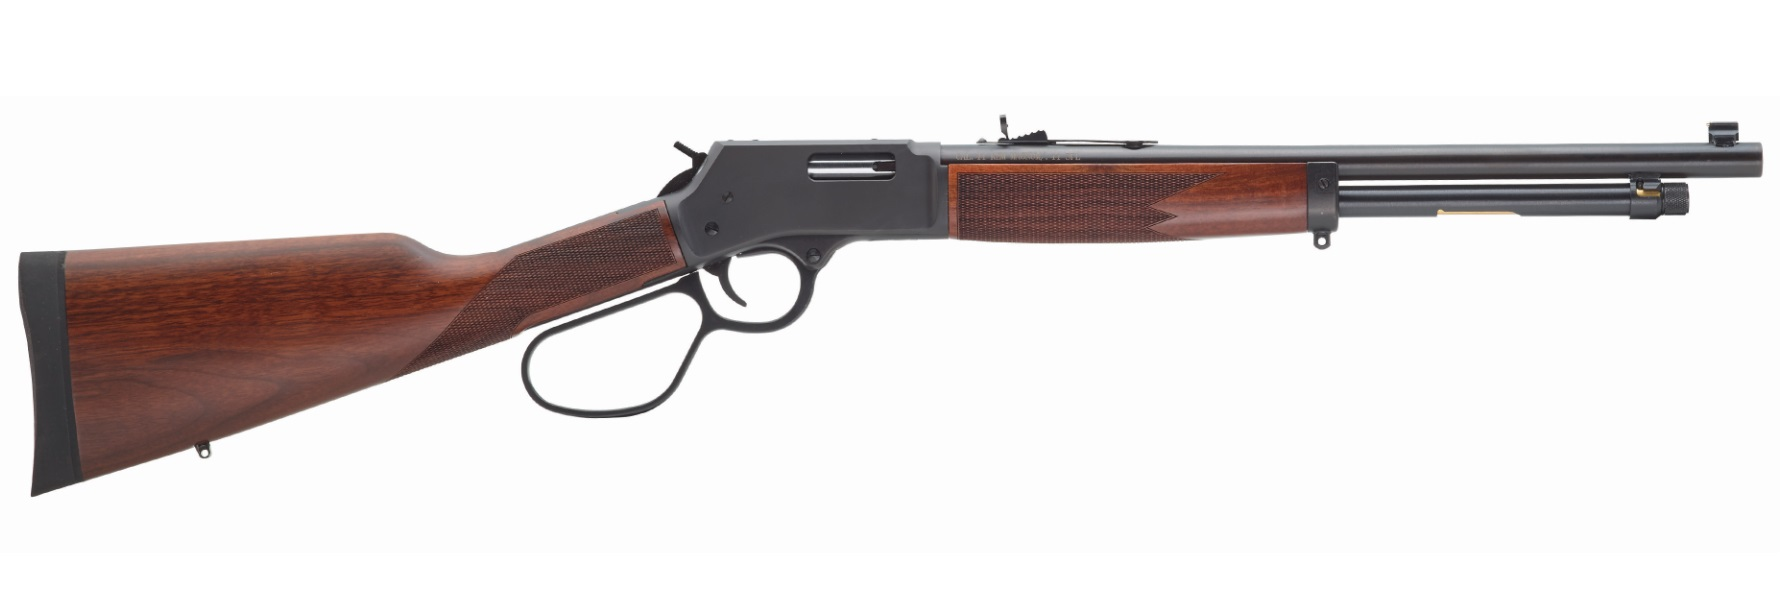 Henry Repeating Arms Big Boy Steel Carbine 41 Magnum